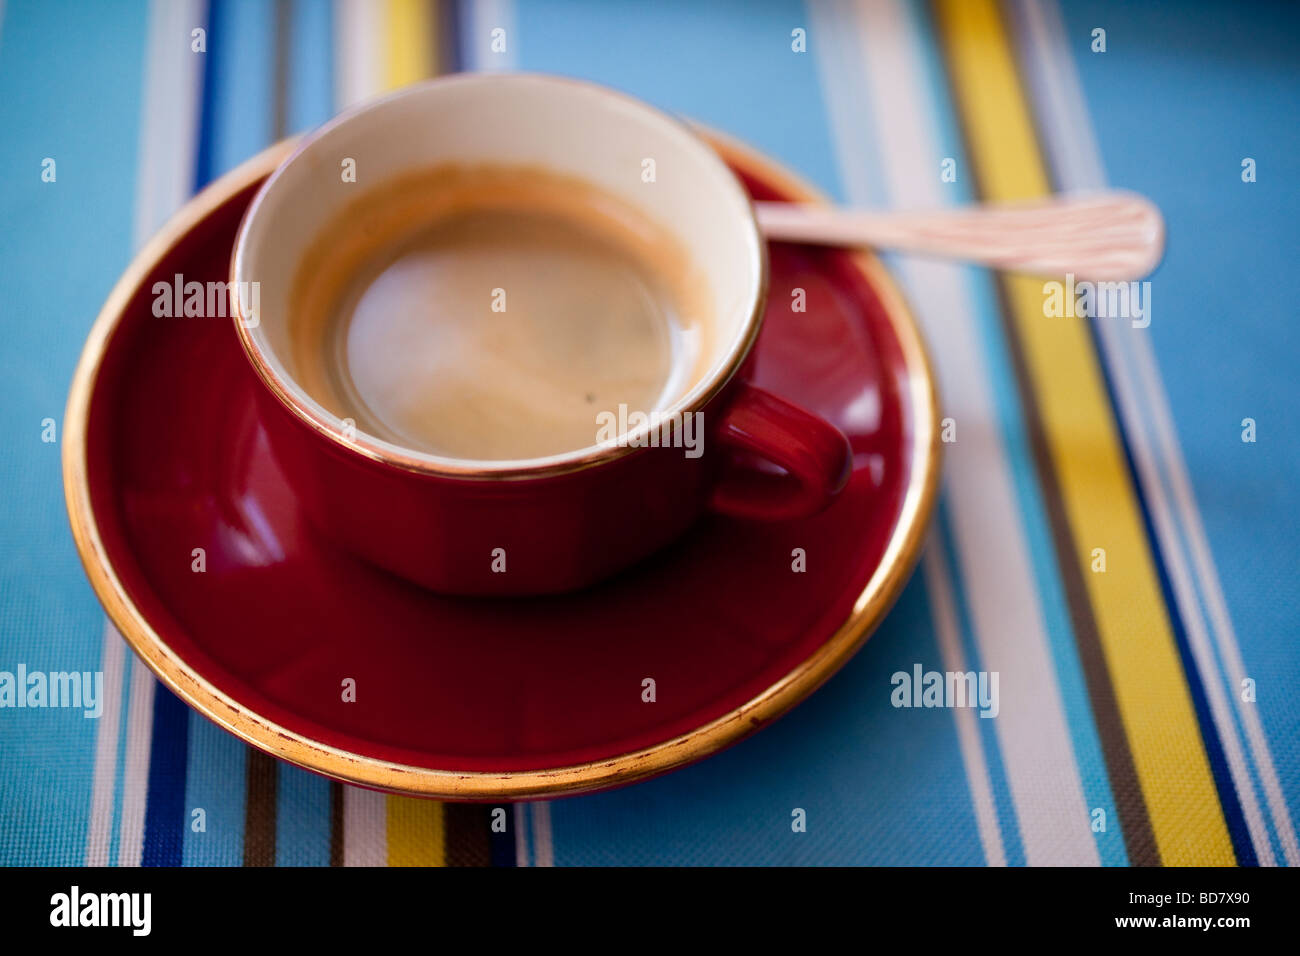 Une tasse de café Photo Stock